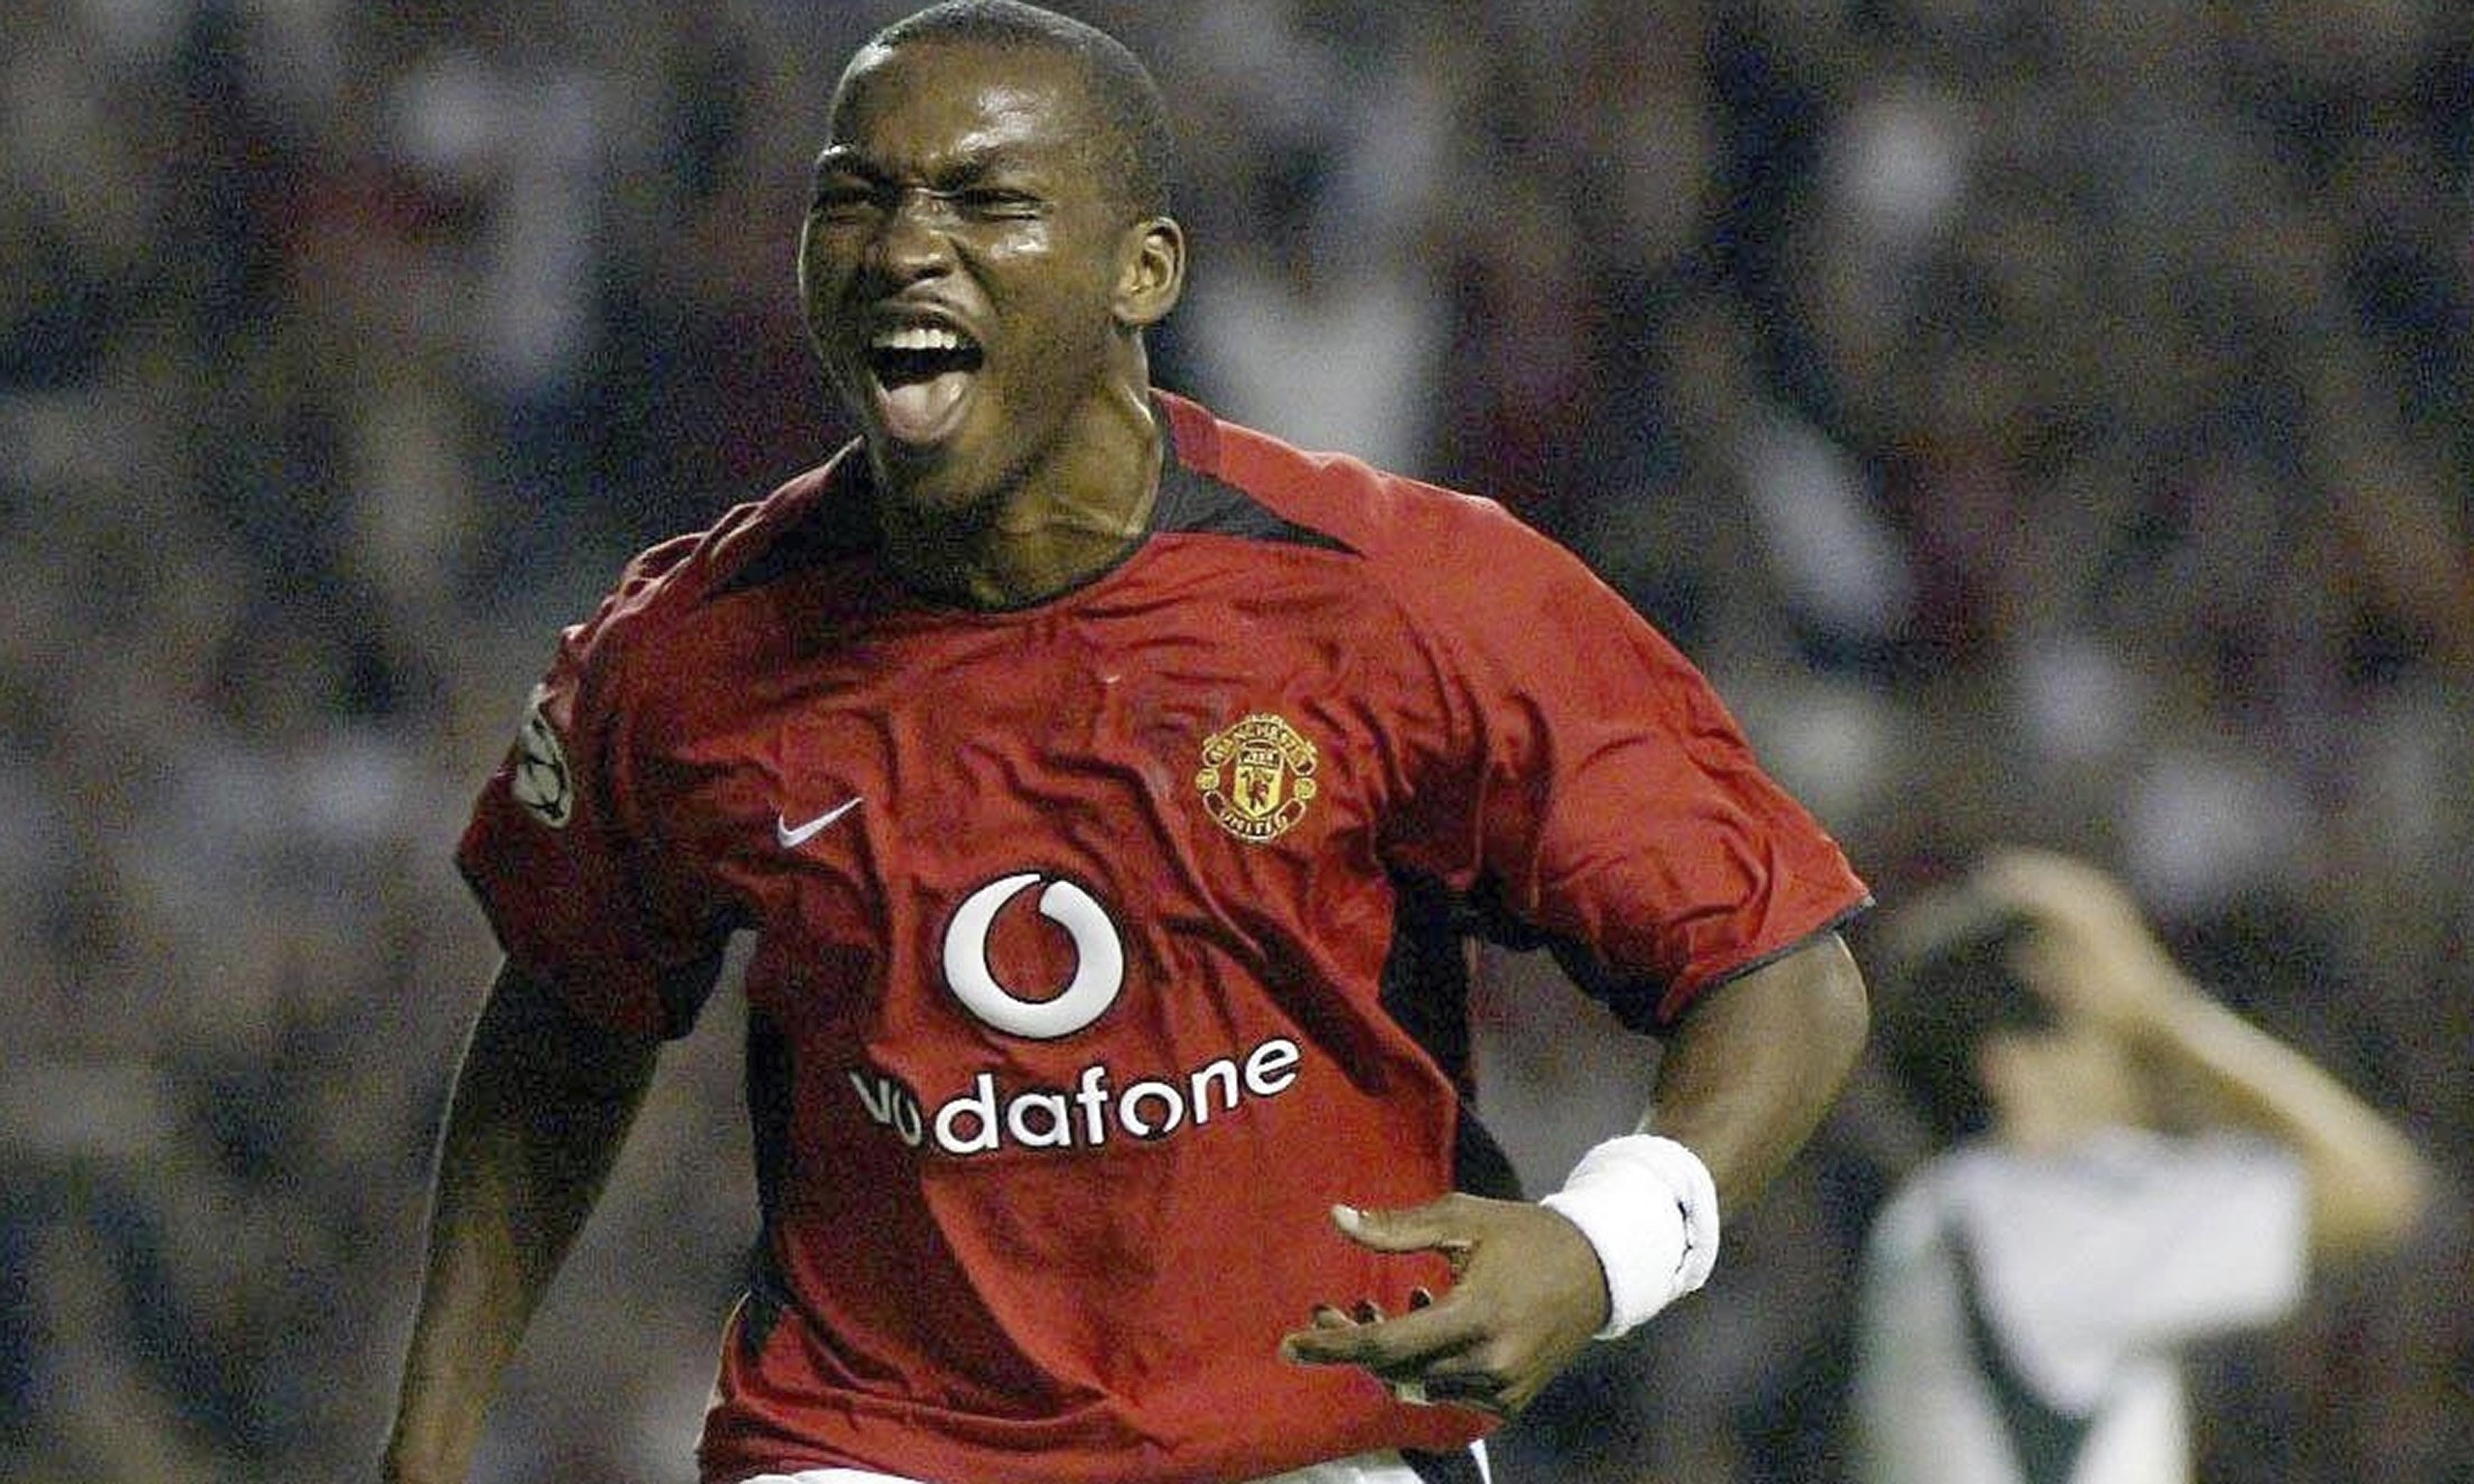 http://static.guim.co.uk/sys-images/Football/Pix/pictures/2013/11/16/1384605589248/Eric-Djemba-Djemba-former-014.jpg